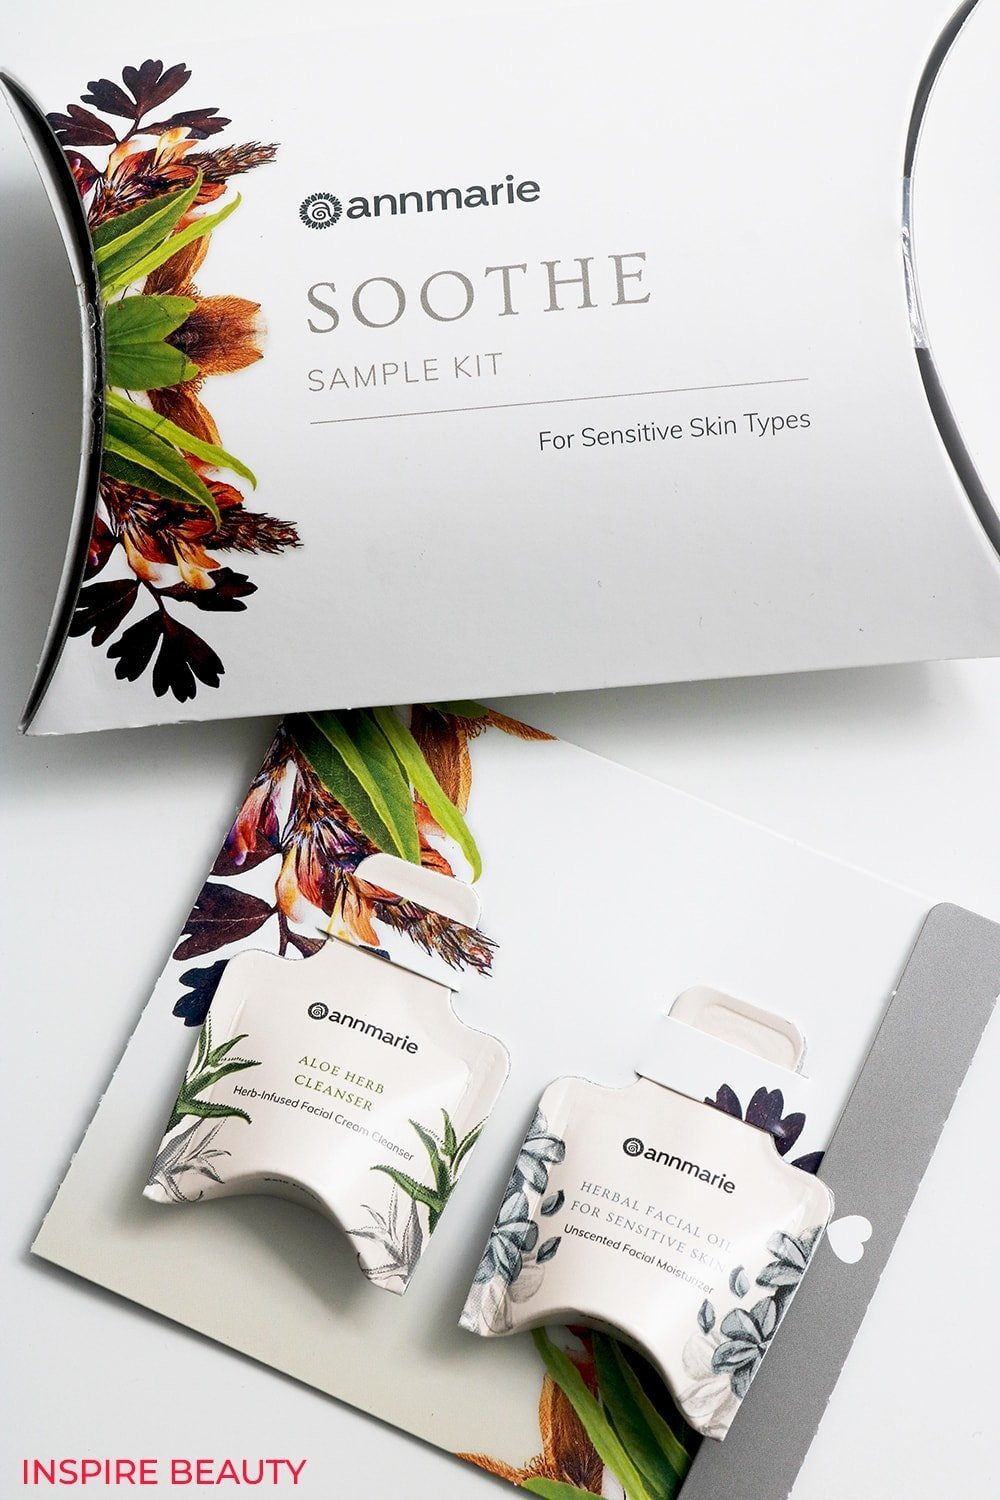 Annmarie Skin Care Soothing Sample Kit is calming and nourishing. Aloe Herb Cleanser is mild and gentle, while the Herbal Facial Oil For Sensitive Skin is unscented and essential oil free making it perfect for sensitive skin prone to redness and irritation.